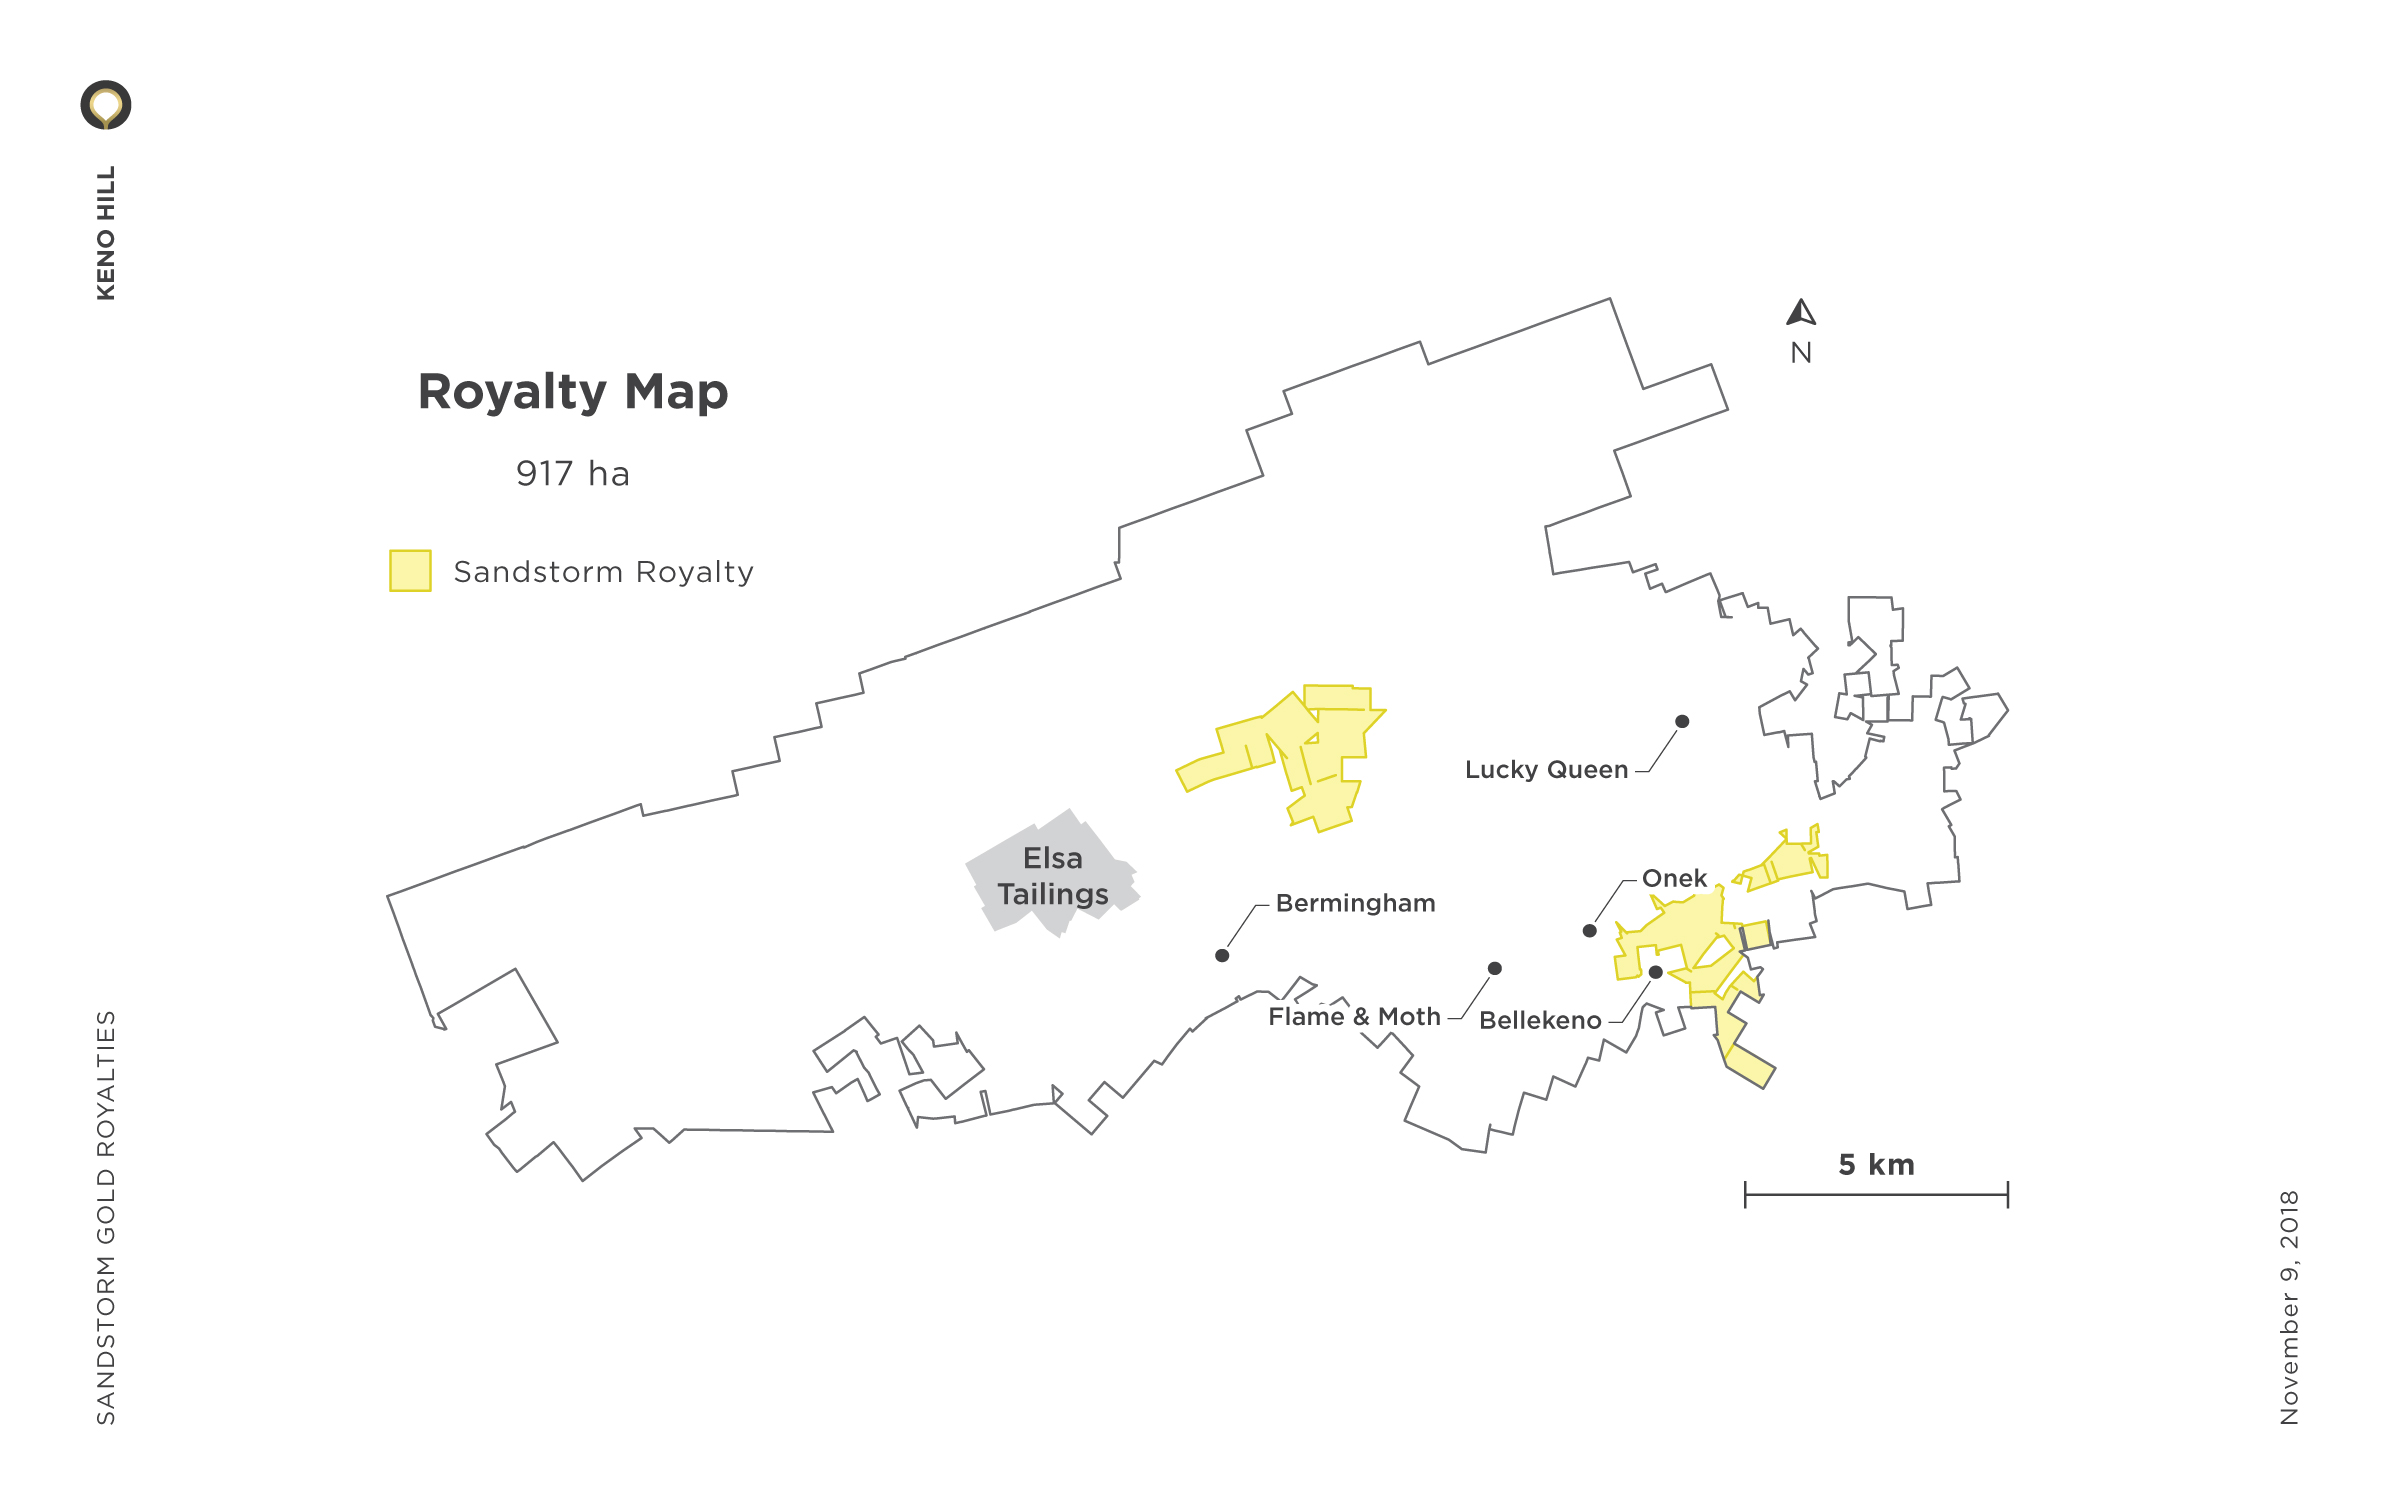 Keno Hill Royalty Map